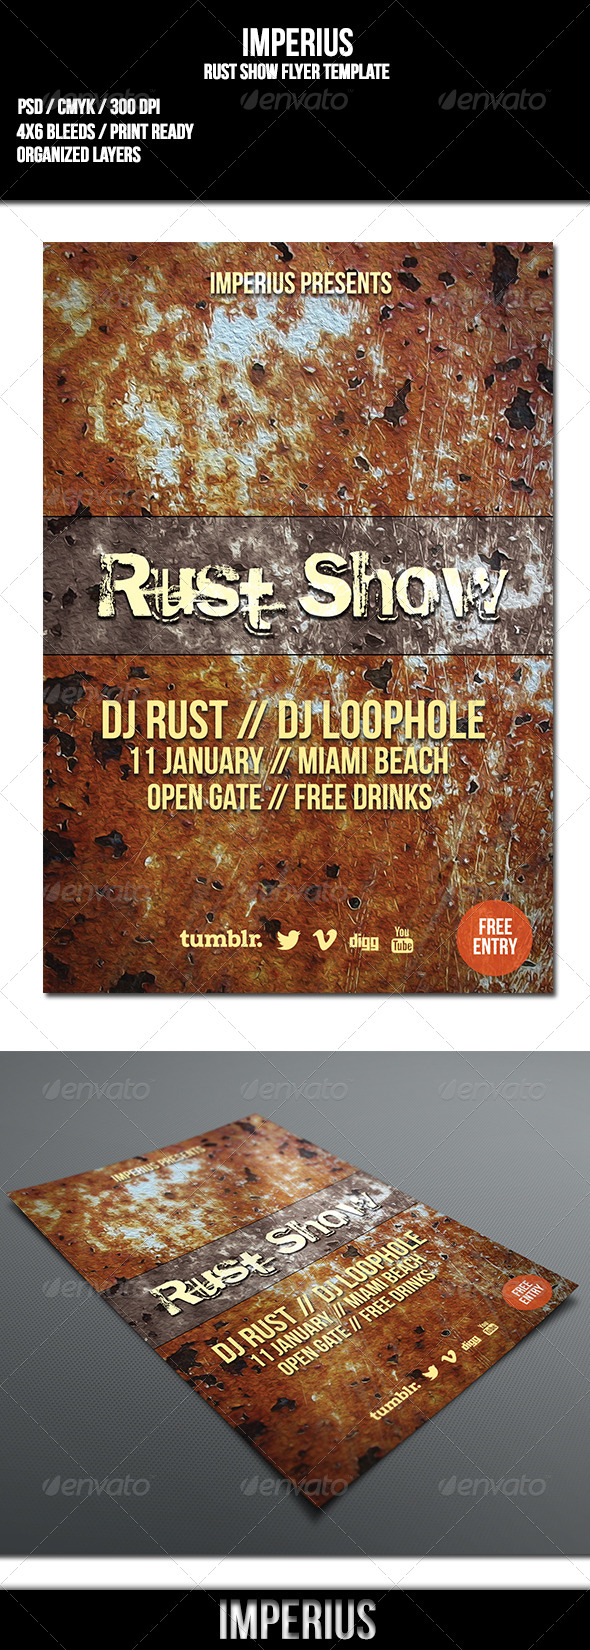 Rust Show Flyer - Flyers Print Templates